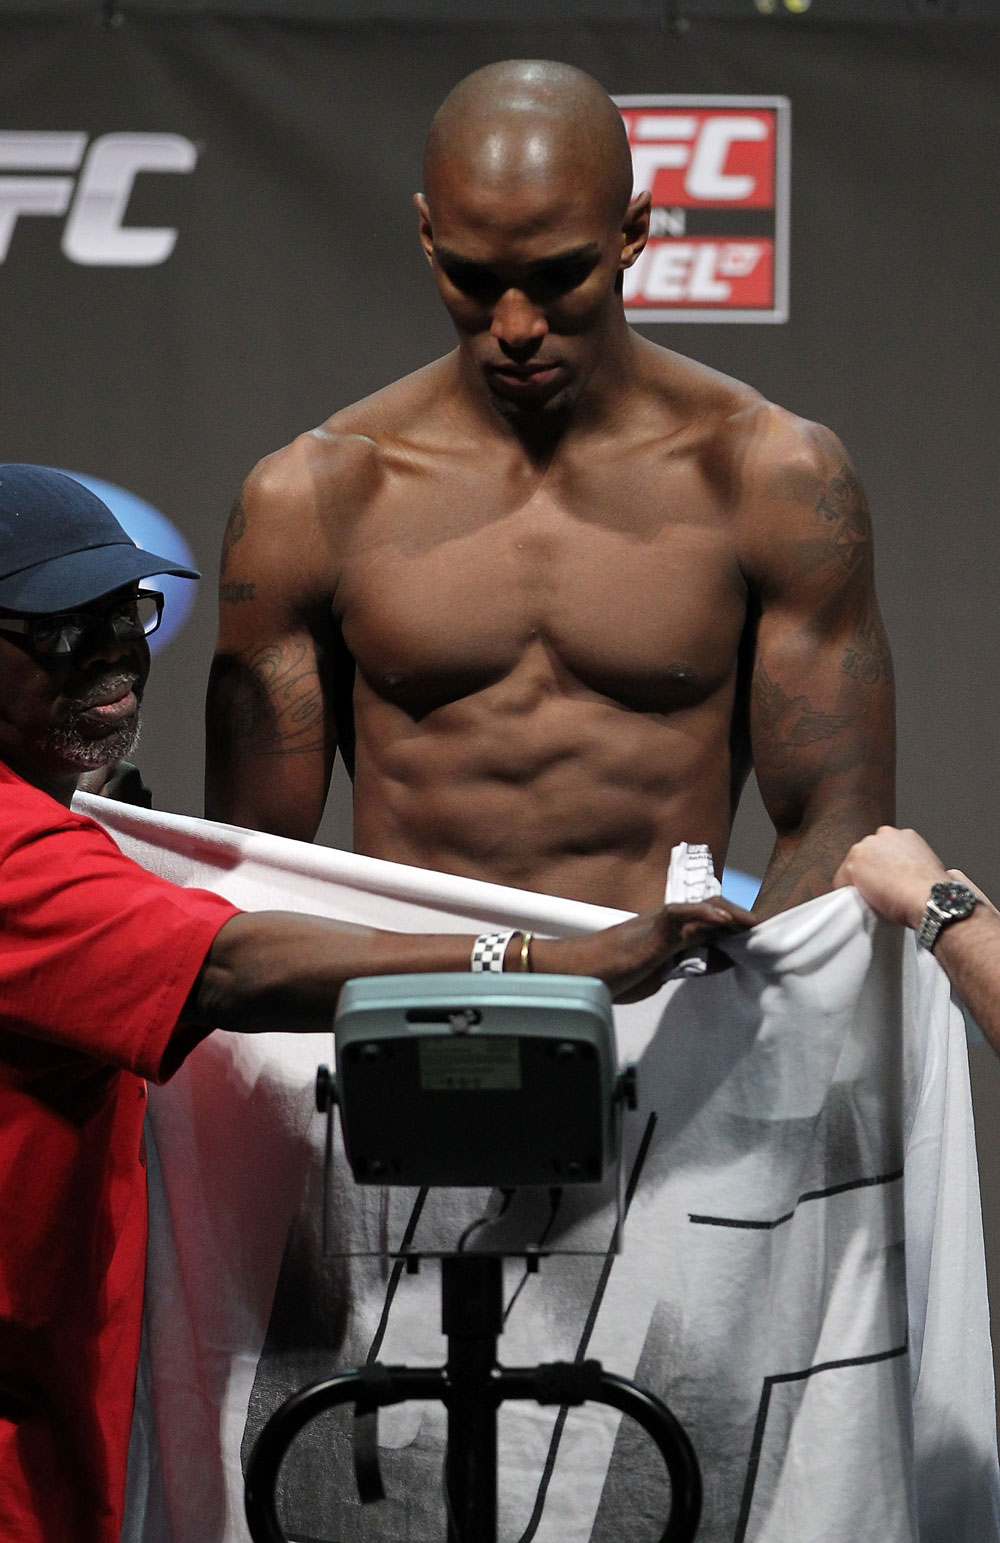 SAN JOSE, CA - JULY 10:   Francis Carmont makes weight during the UFC on Fuel TV weigh in at HP Pavilion on July 10, 2012 in San Jose, California.  (Photo by Josh Hedges/Zuffa LLC/Zuffa LLC via Getty Images)